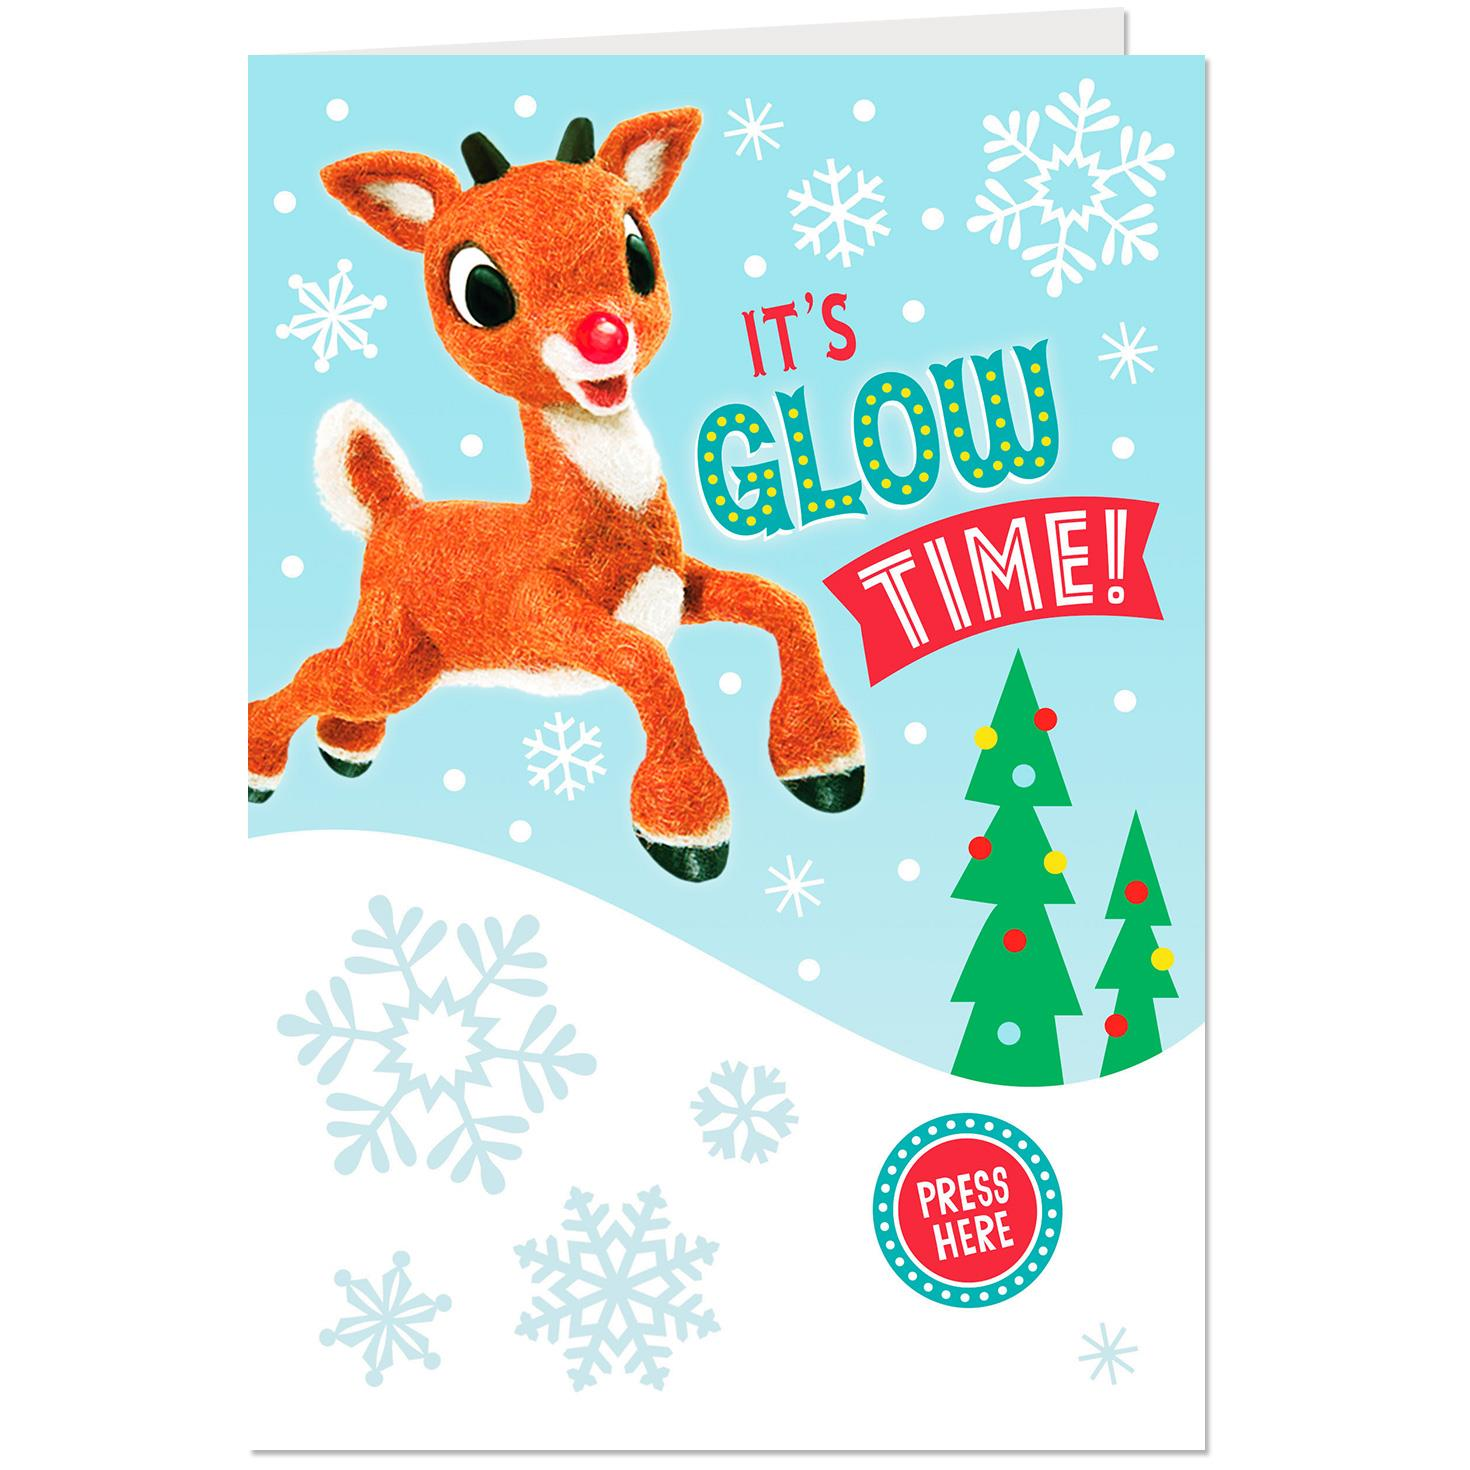 Rudolph The Red Nosed Reindeer Glow Time Musical Christmas Card